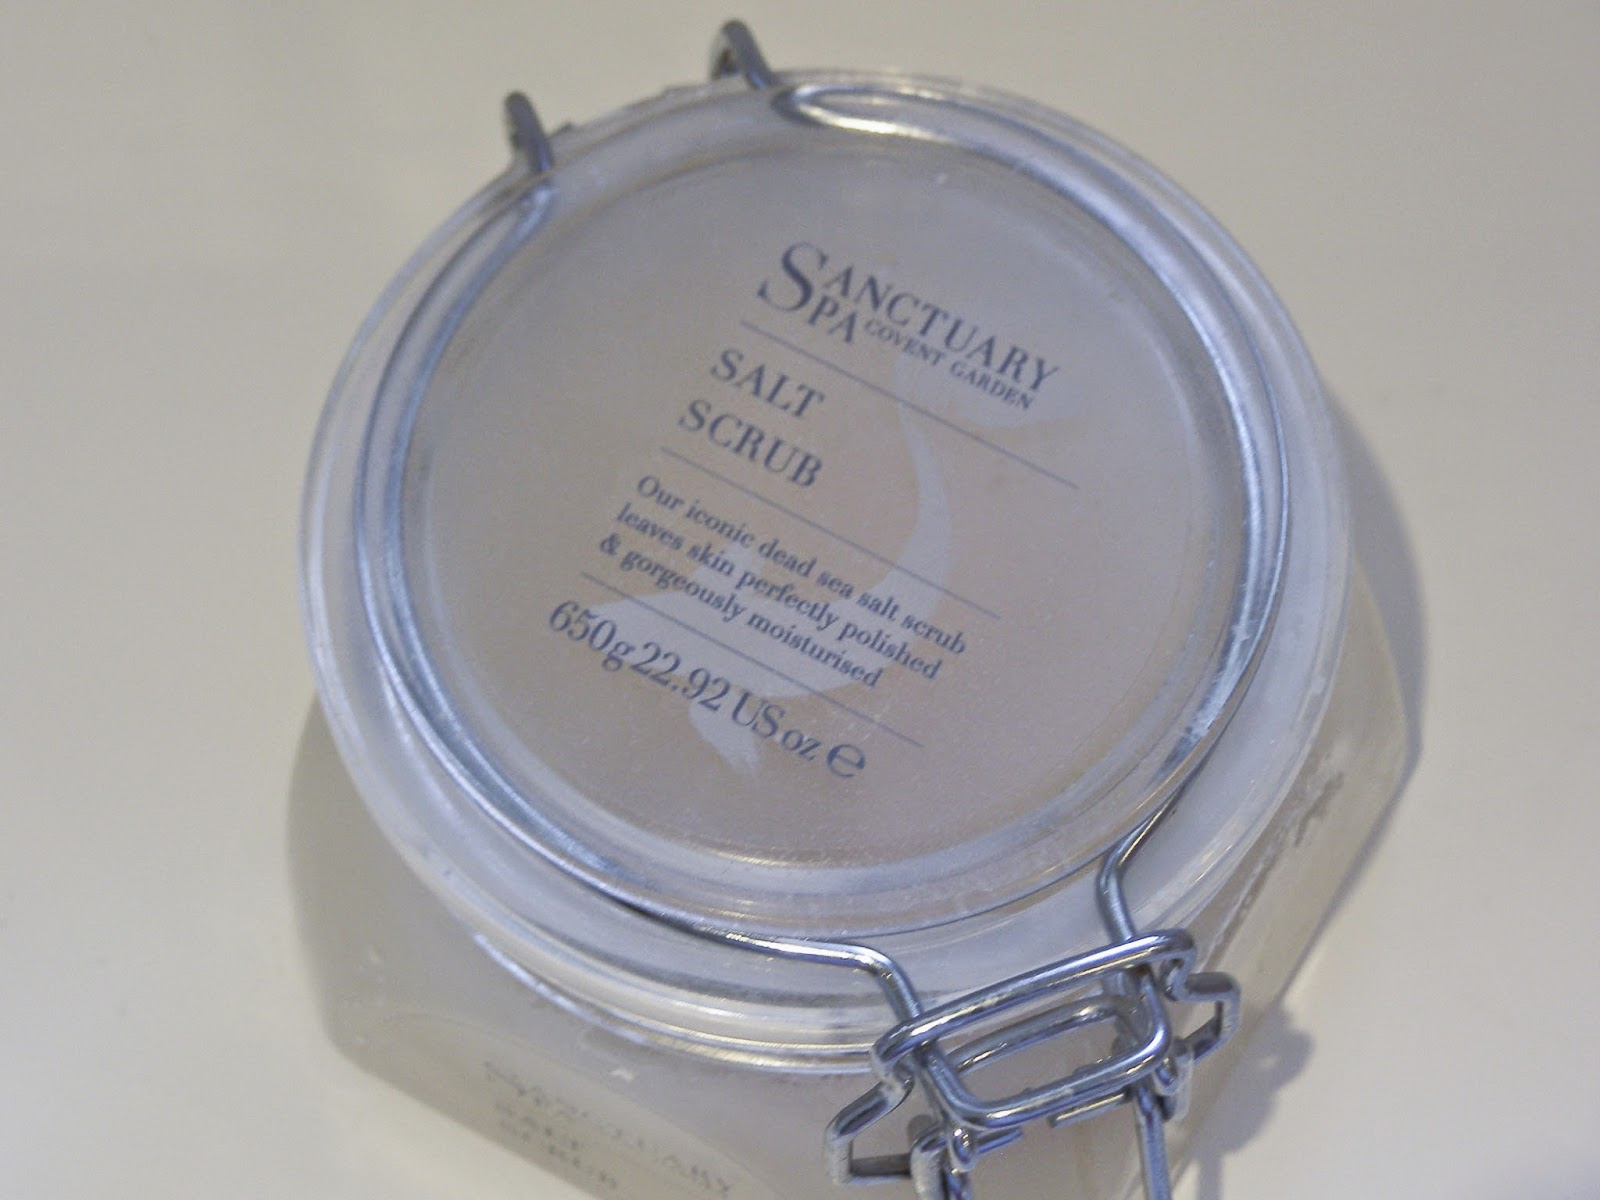 Sanctuary Salt Scrub